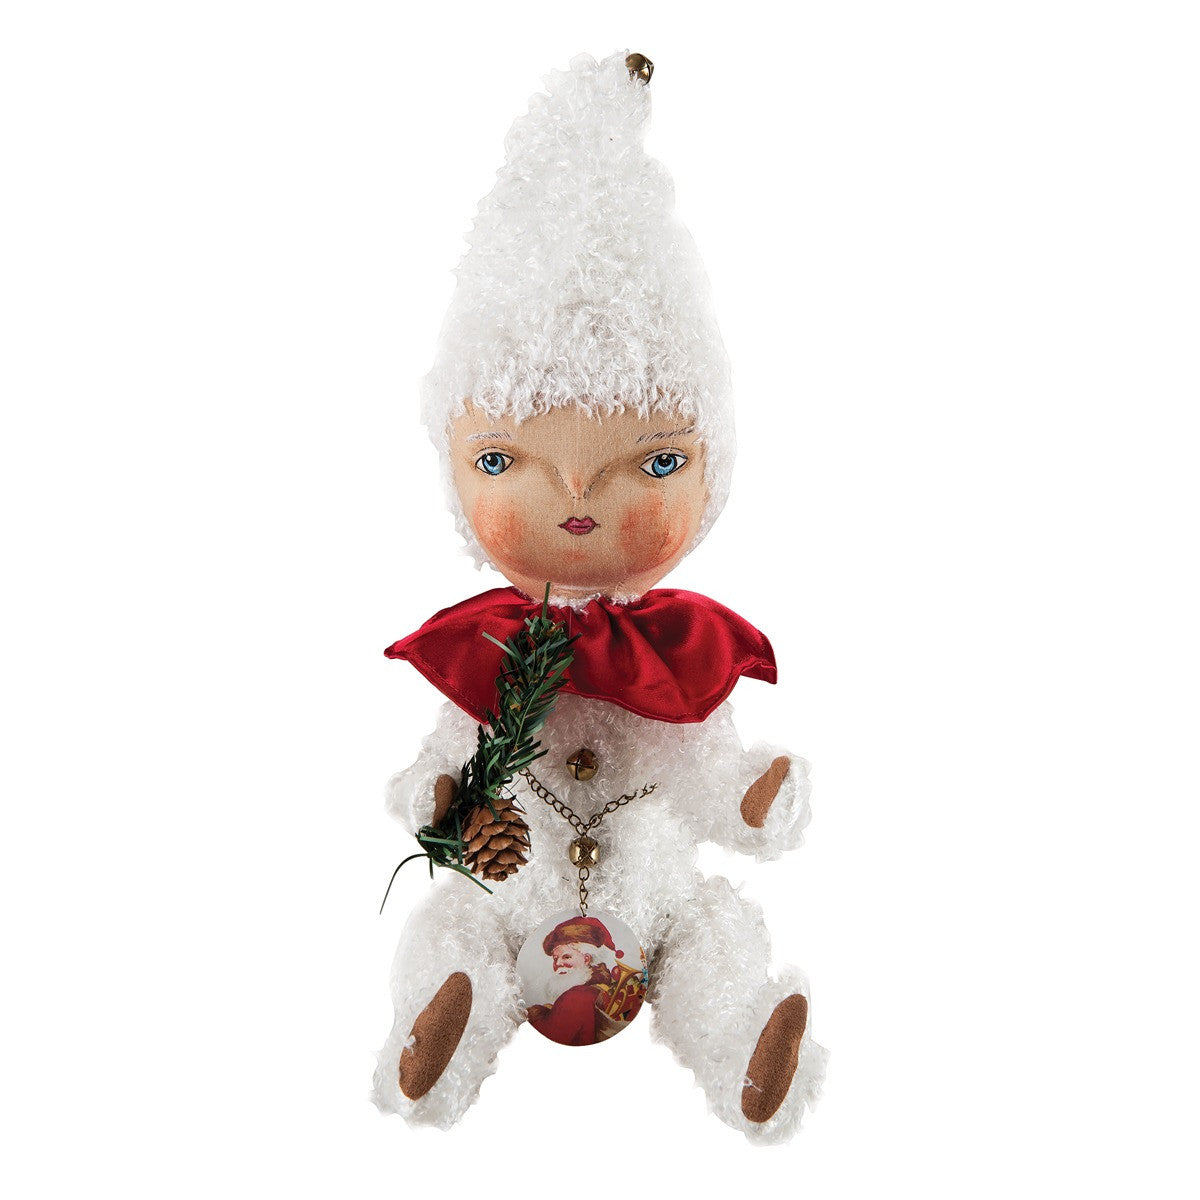 Rue Snowbaby Doll - Joe Spencer Christmas